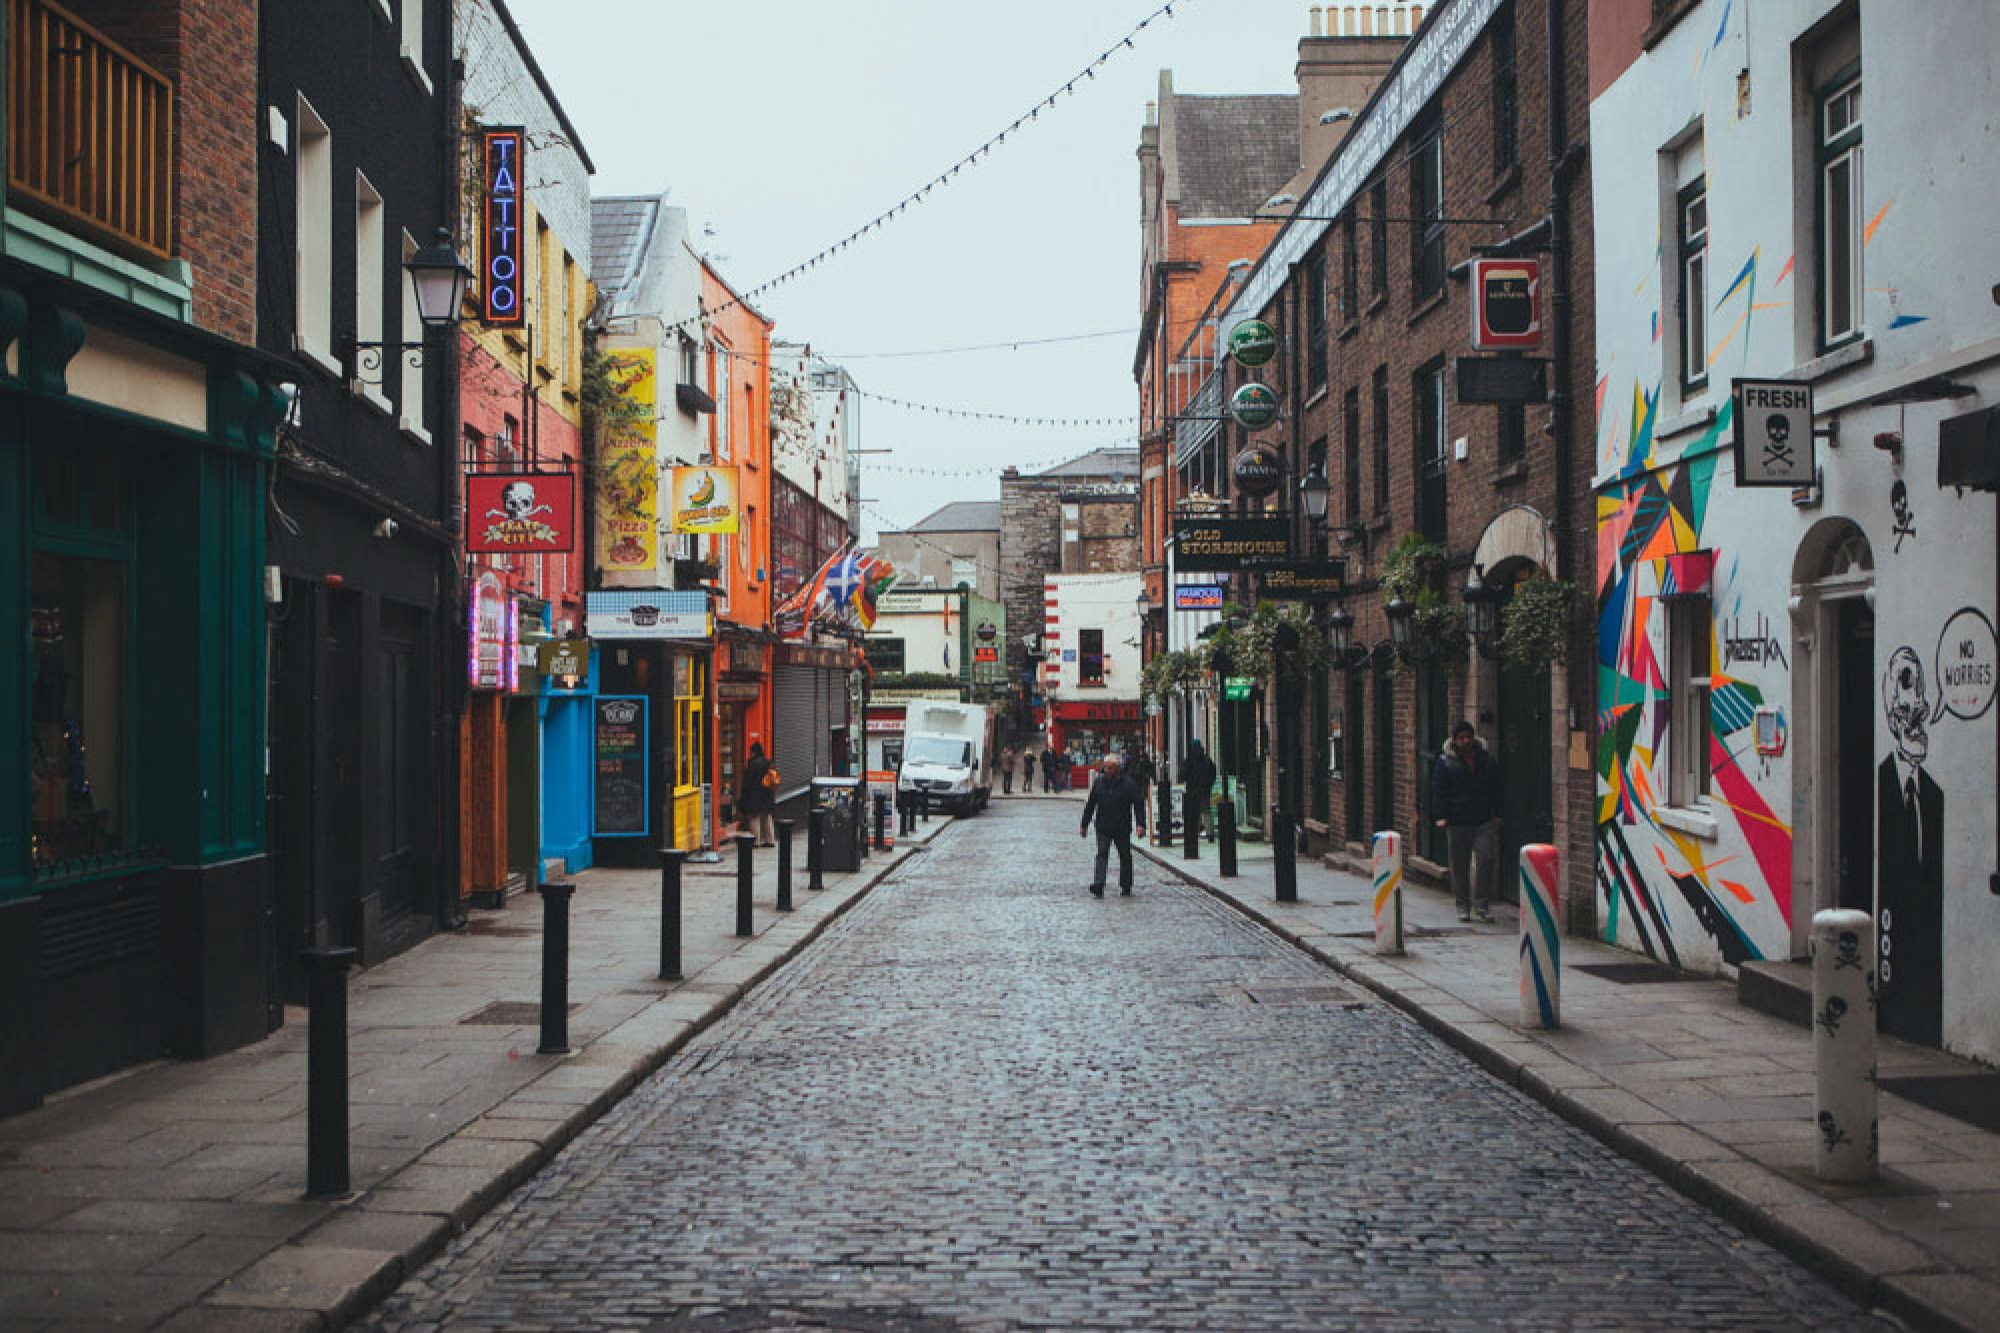 Reasons to visit Dublin - Explore Temple Bar